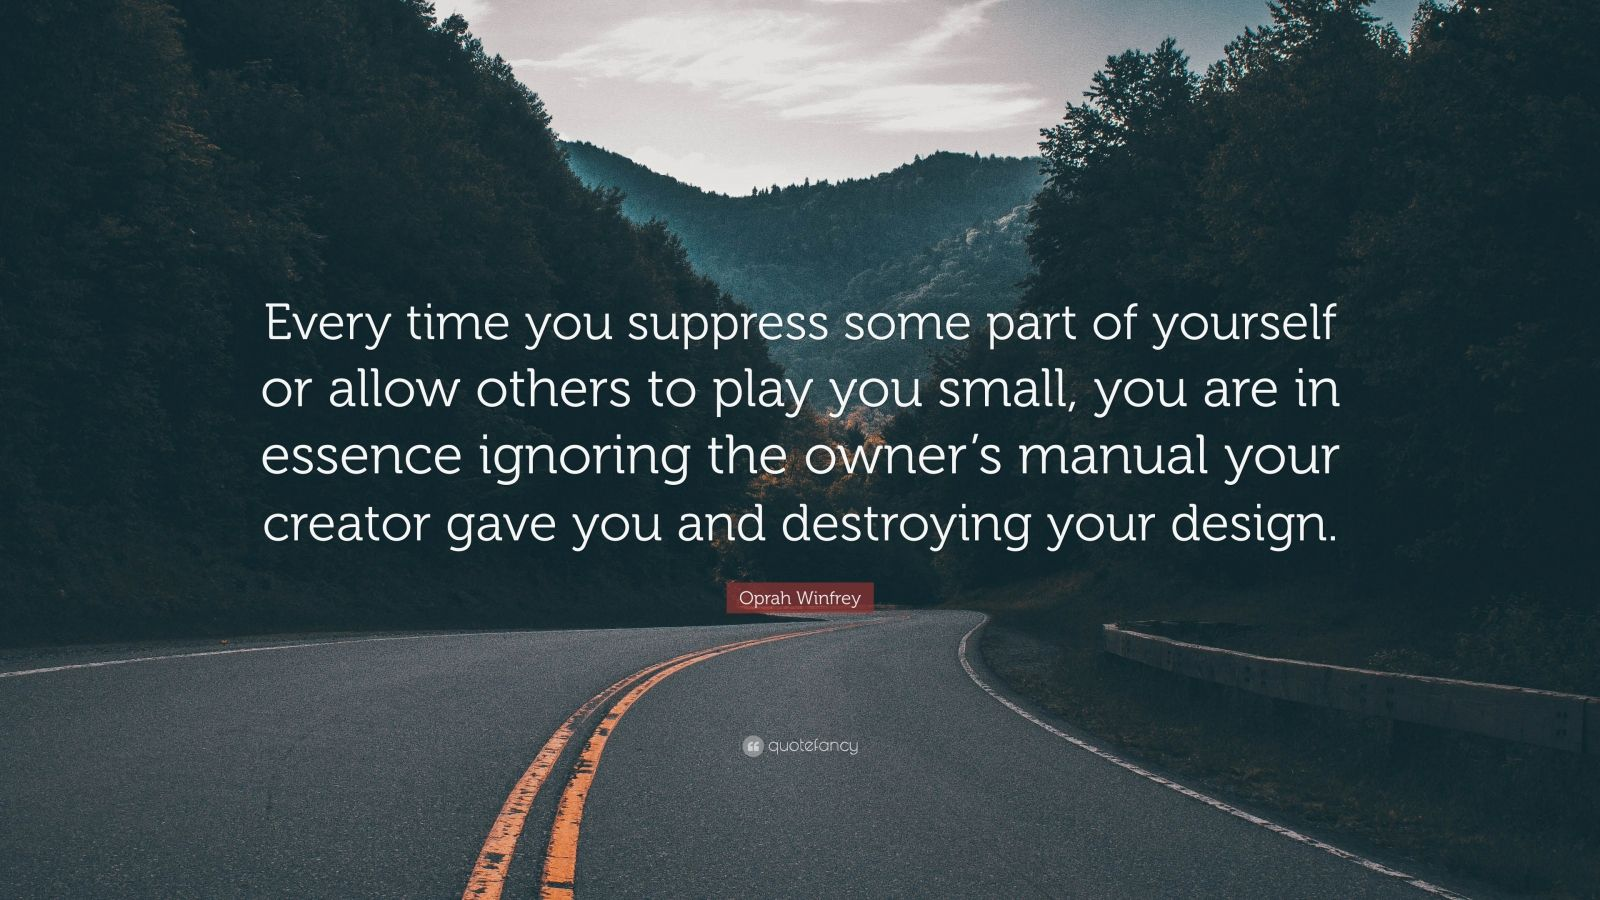 """Oprah Winfrey Quote: """"Every time you suppress some part of yourself or allow others to play you small, you are in essence ignoring the owner's manual your creator gave you and destroying your design."""""""